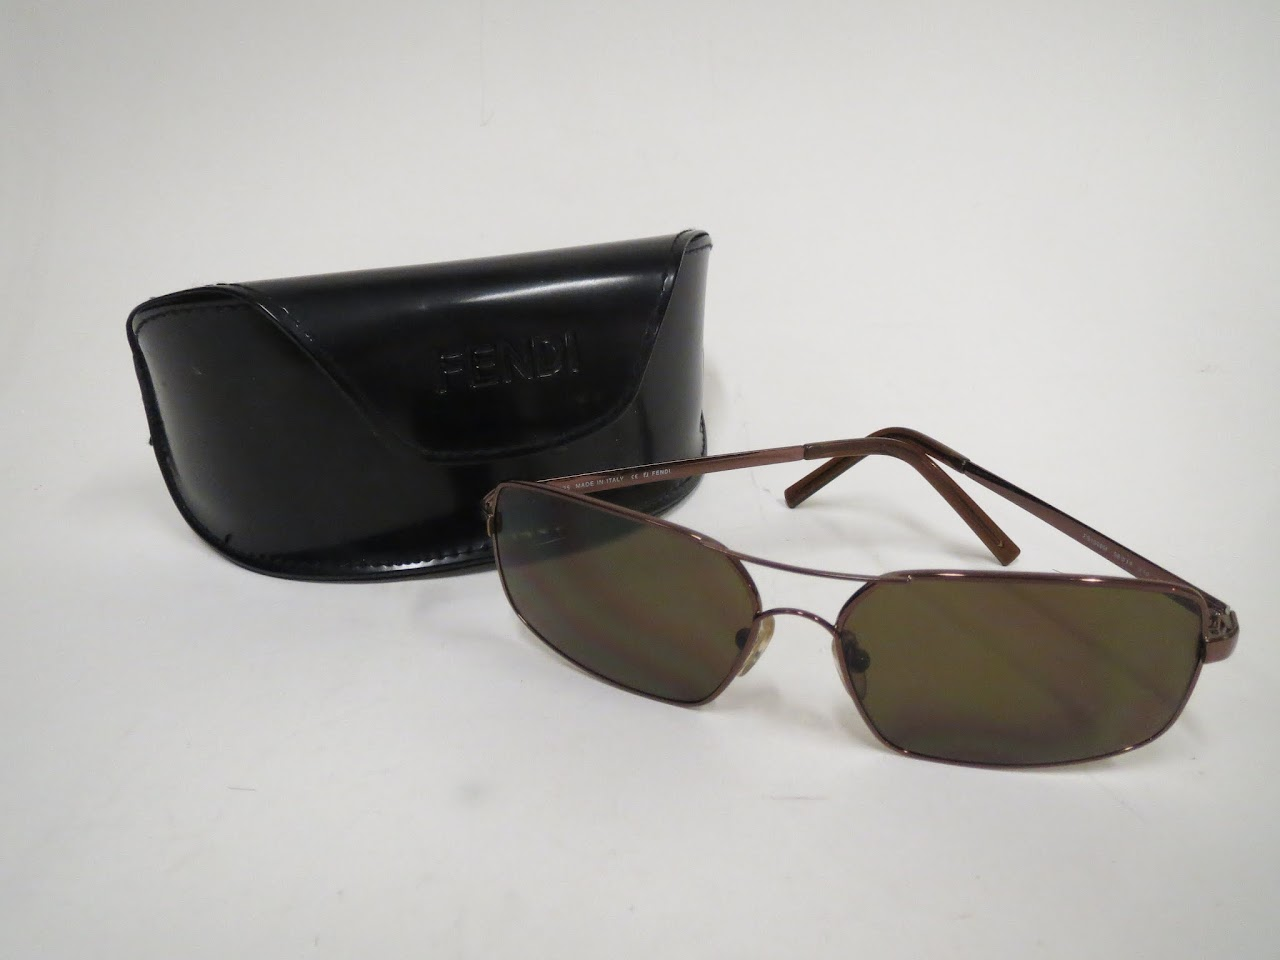 Fendi Rectangular Shades